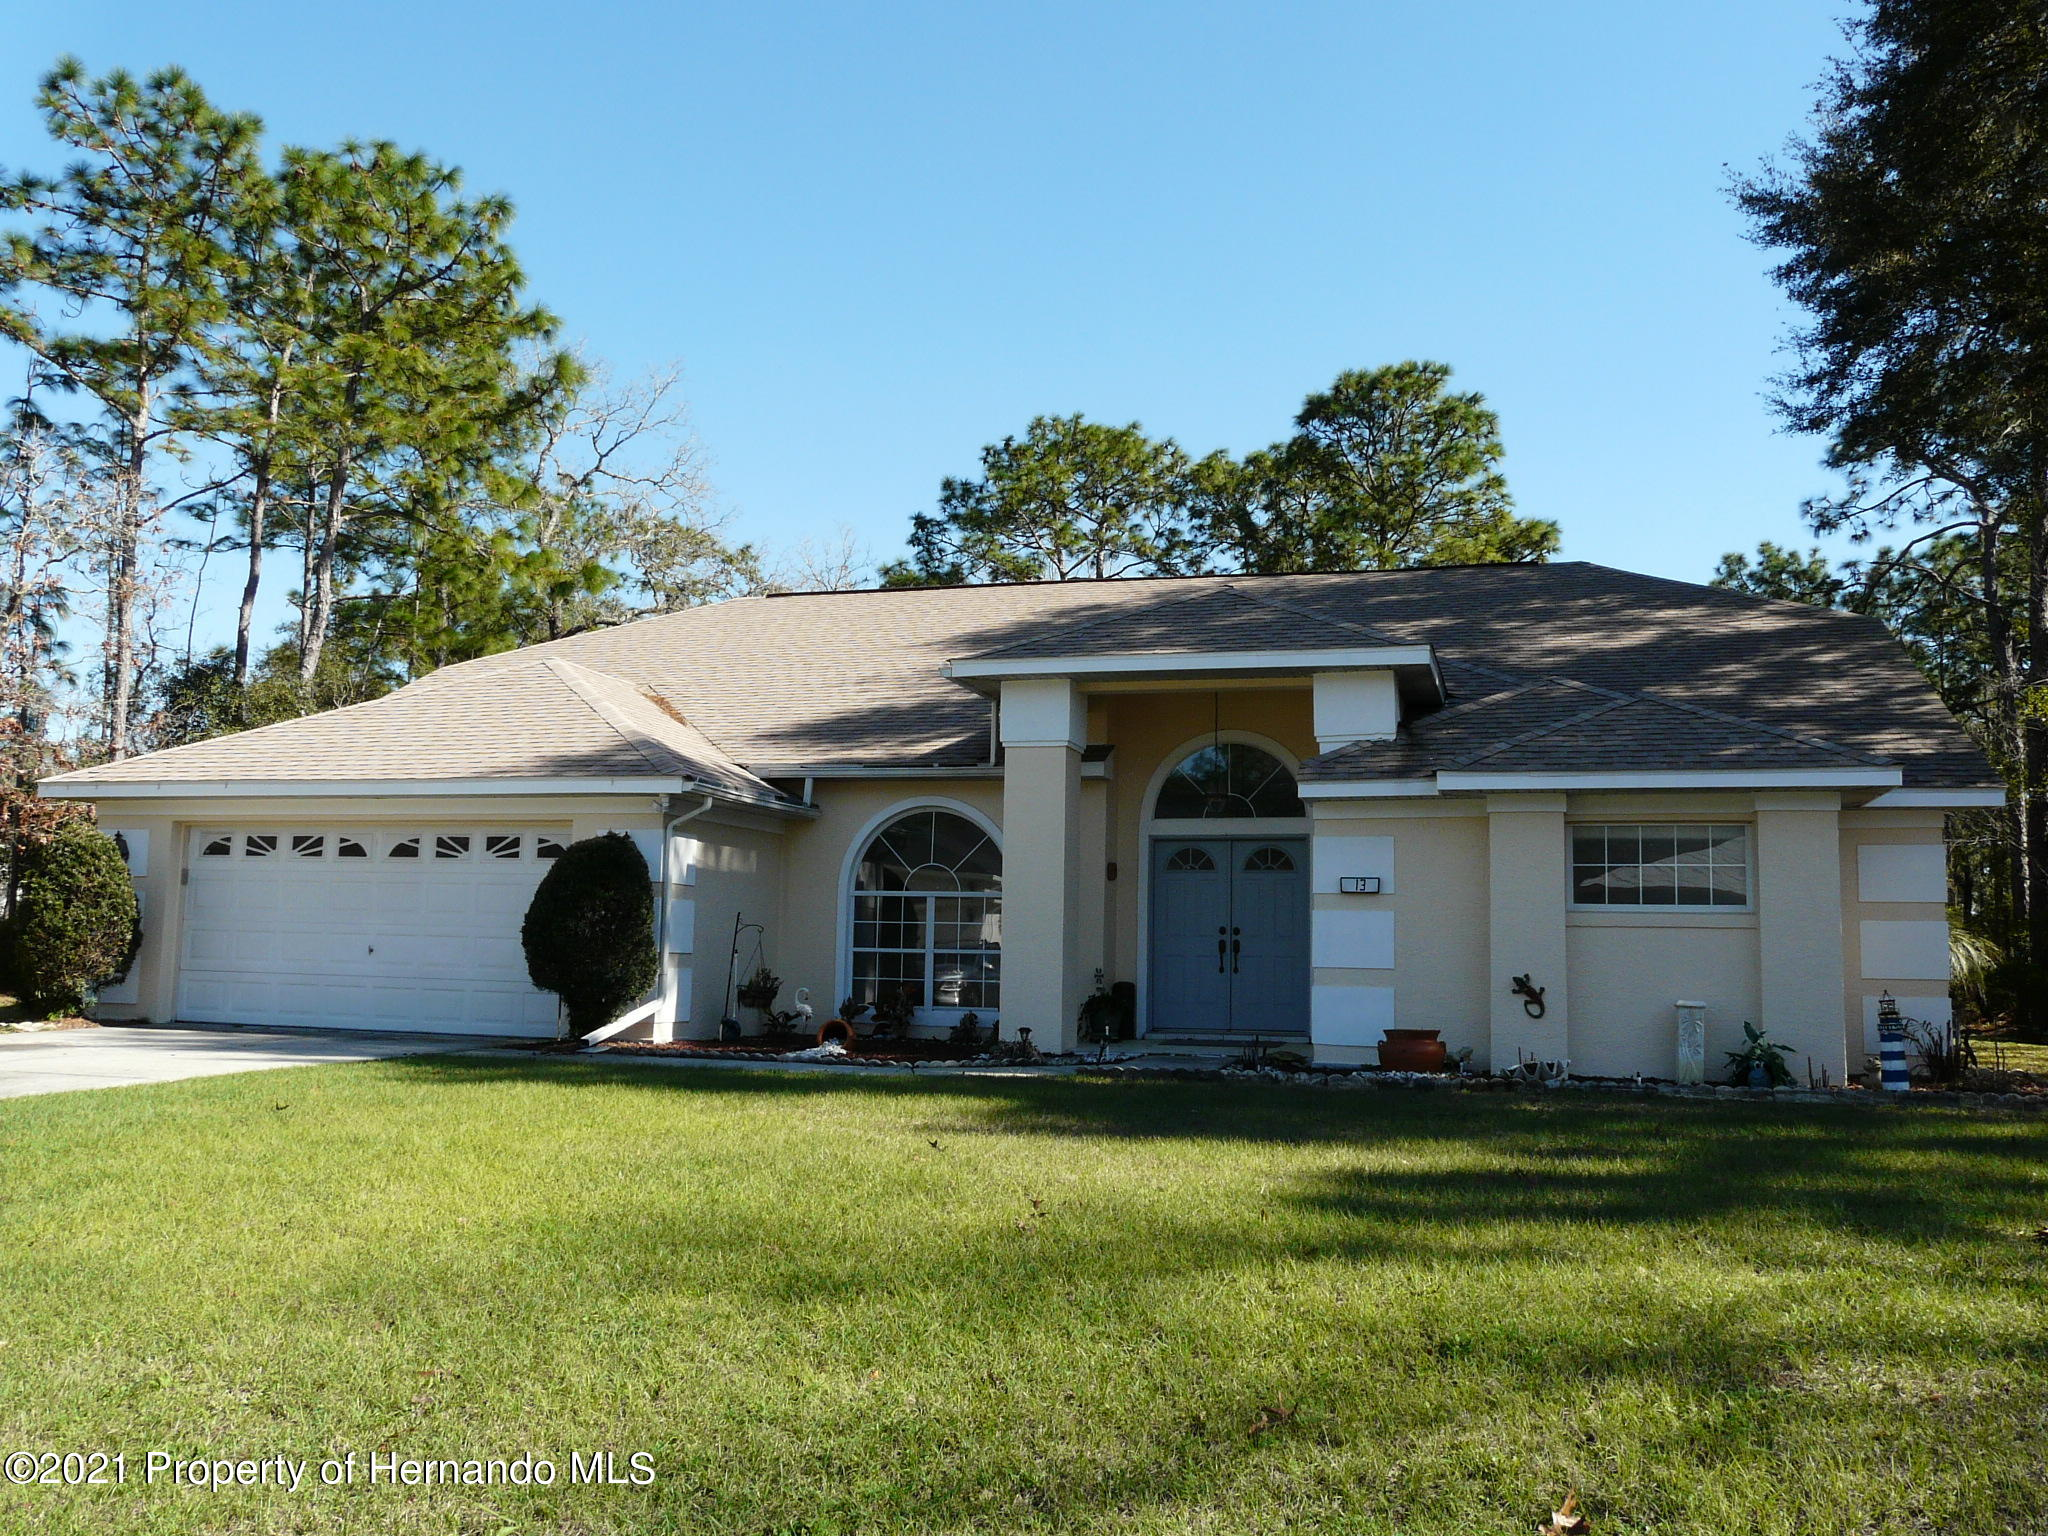 Details for 13 Greentree Street, Homosassa, FL 34446